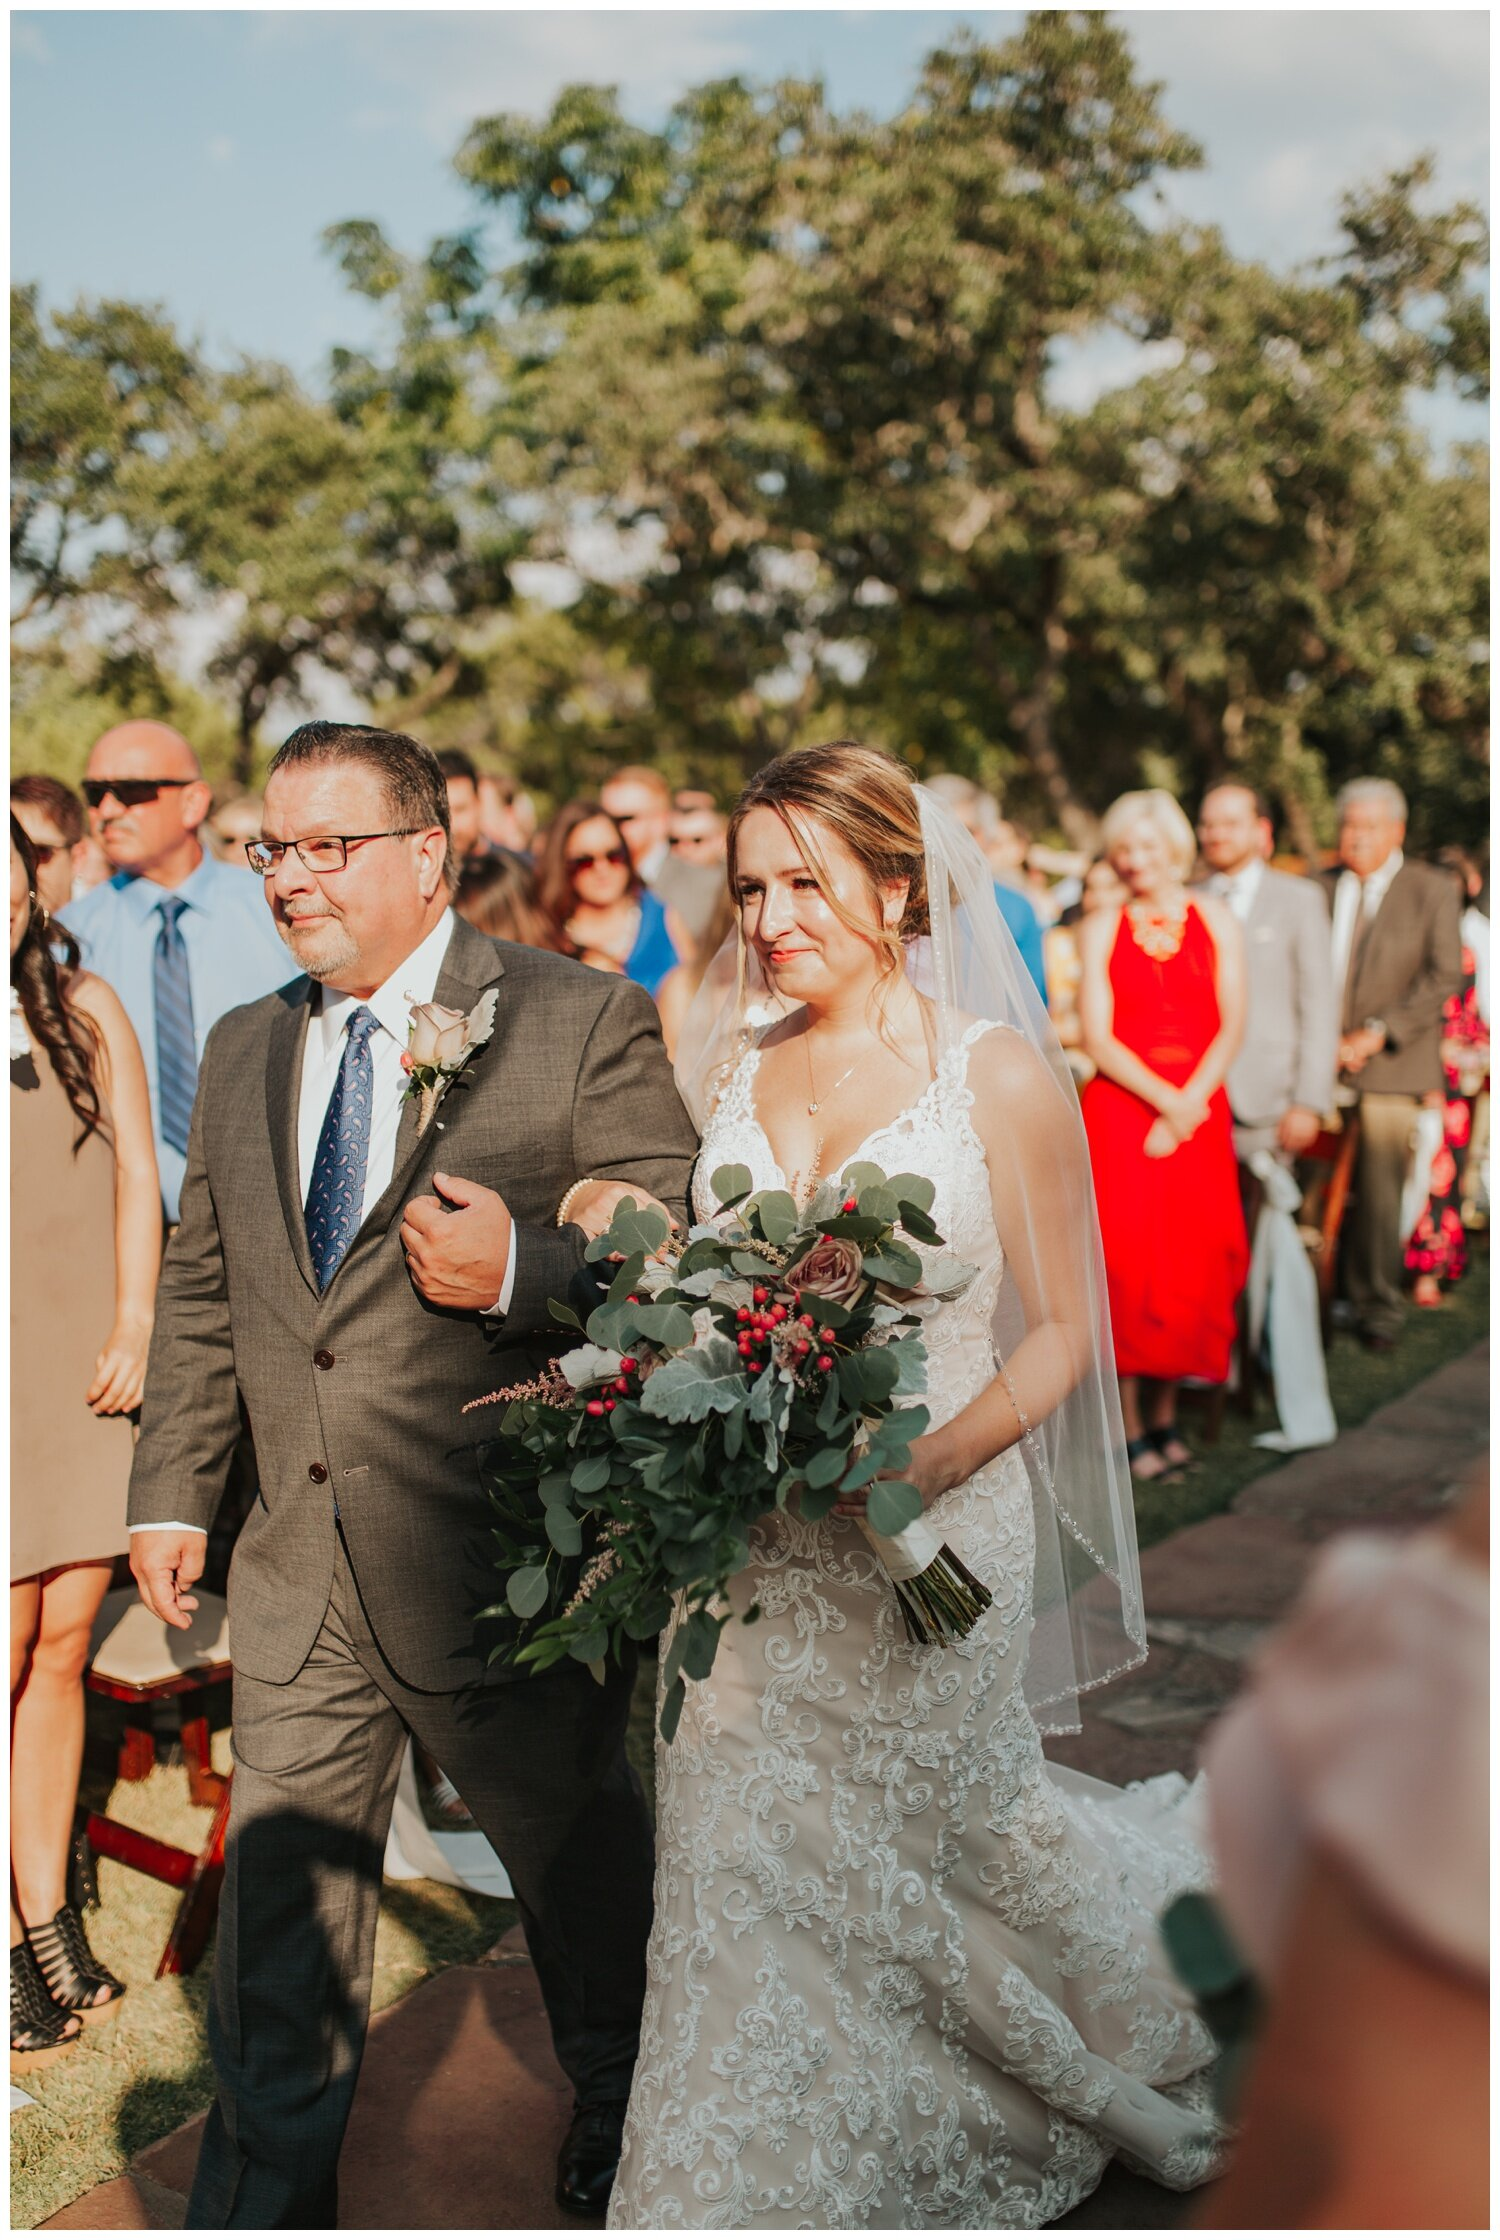 Modern Wedding at Ma Maison in Dripping Springs, Austin, Texas (Joshua and Parisa – Austin Wedding Photographer)_0037.jpg